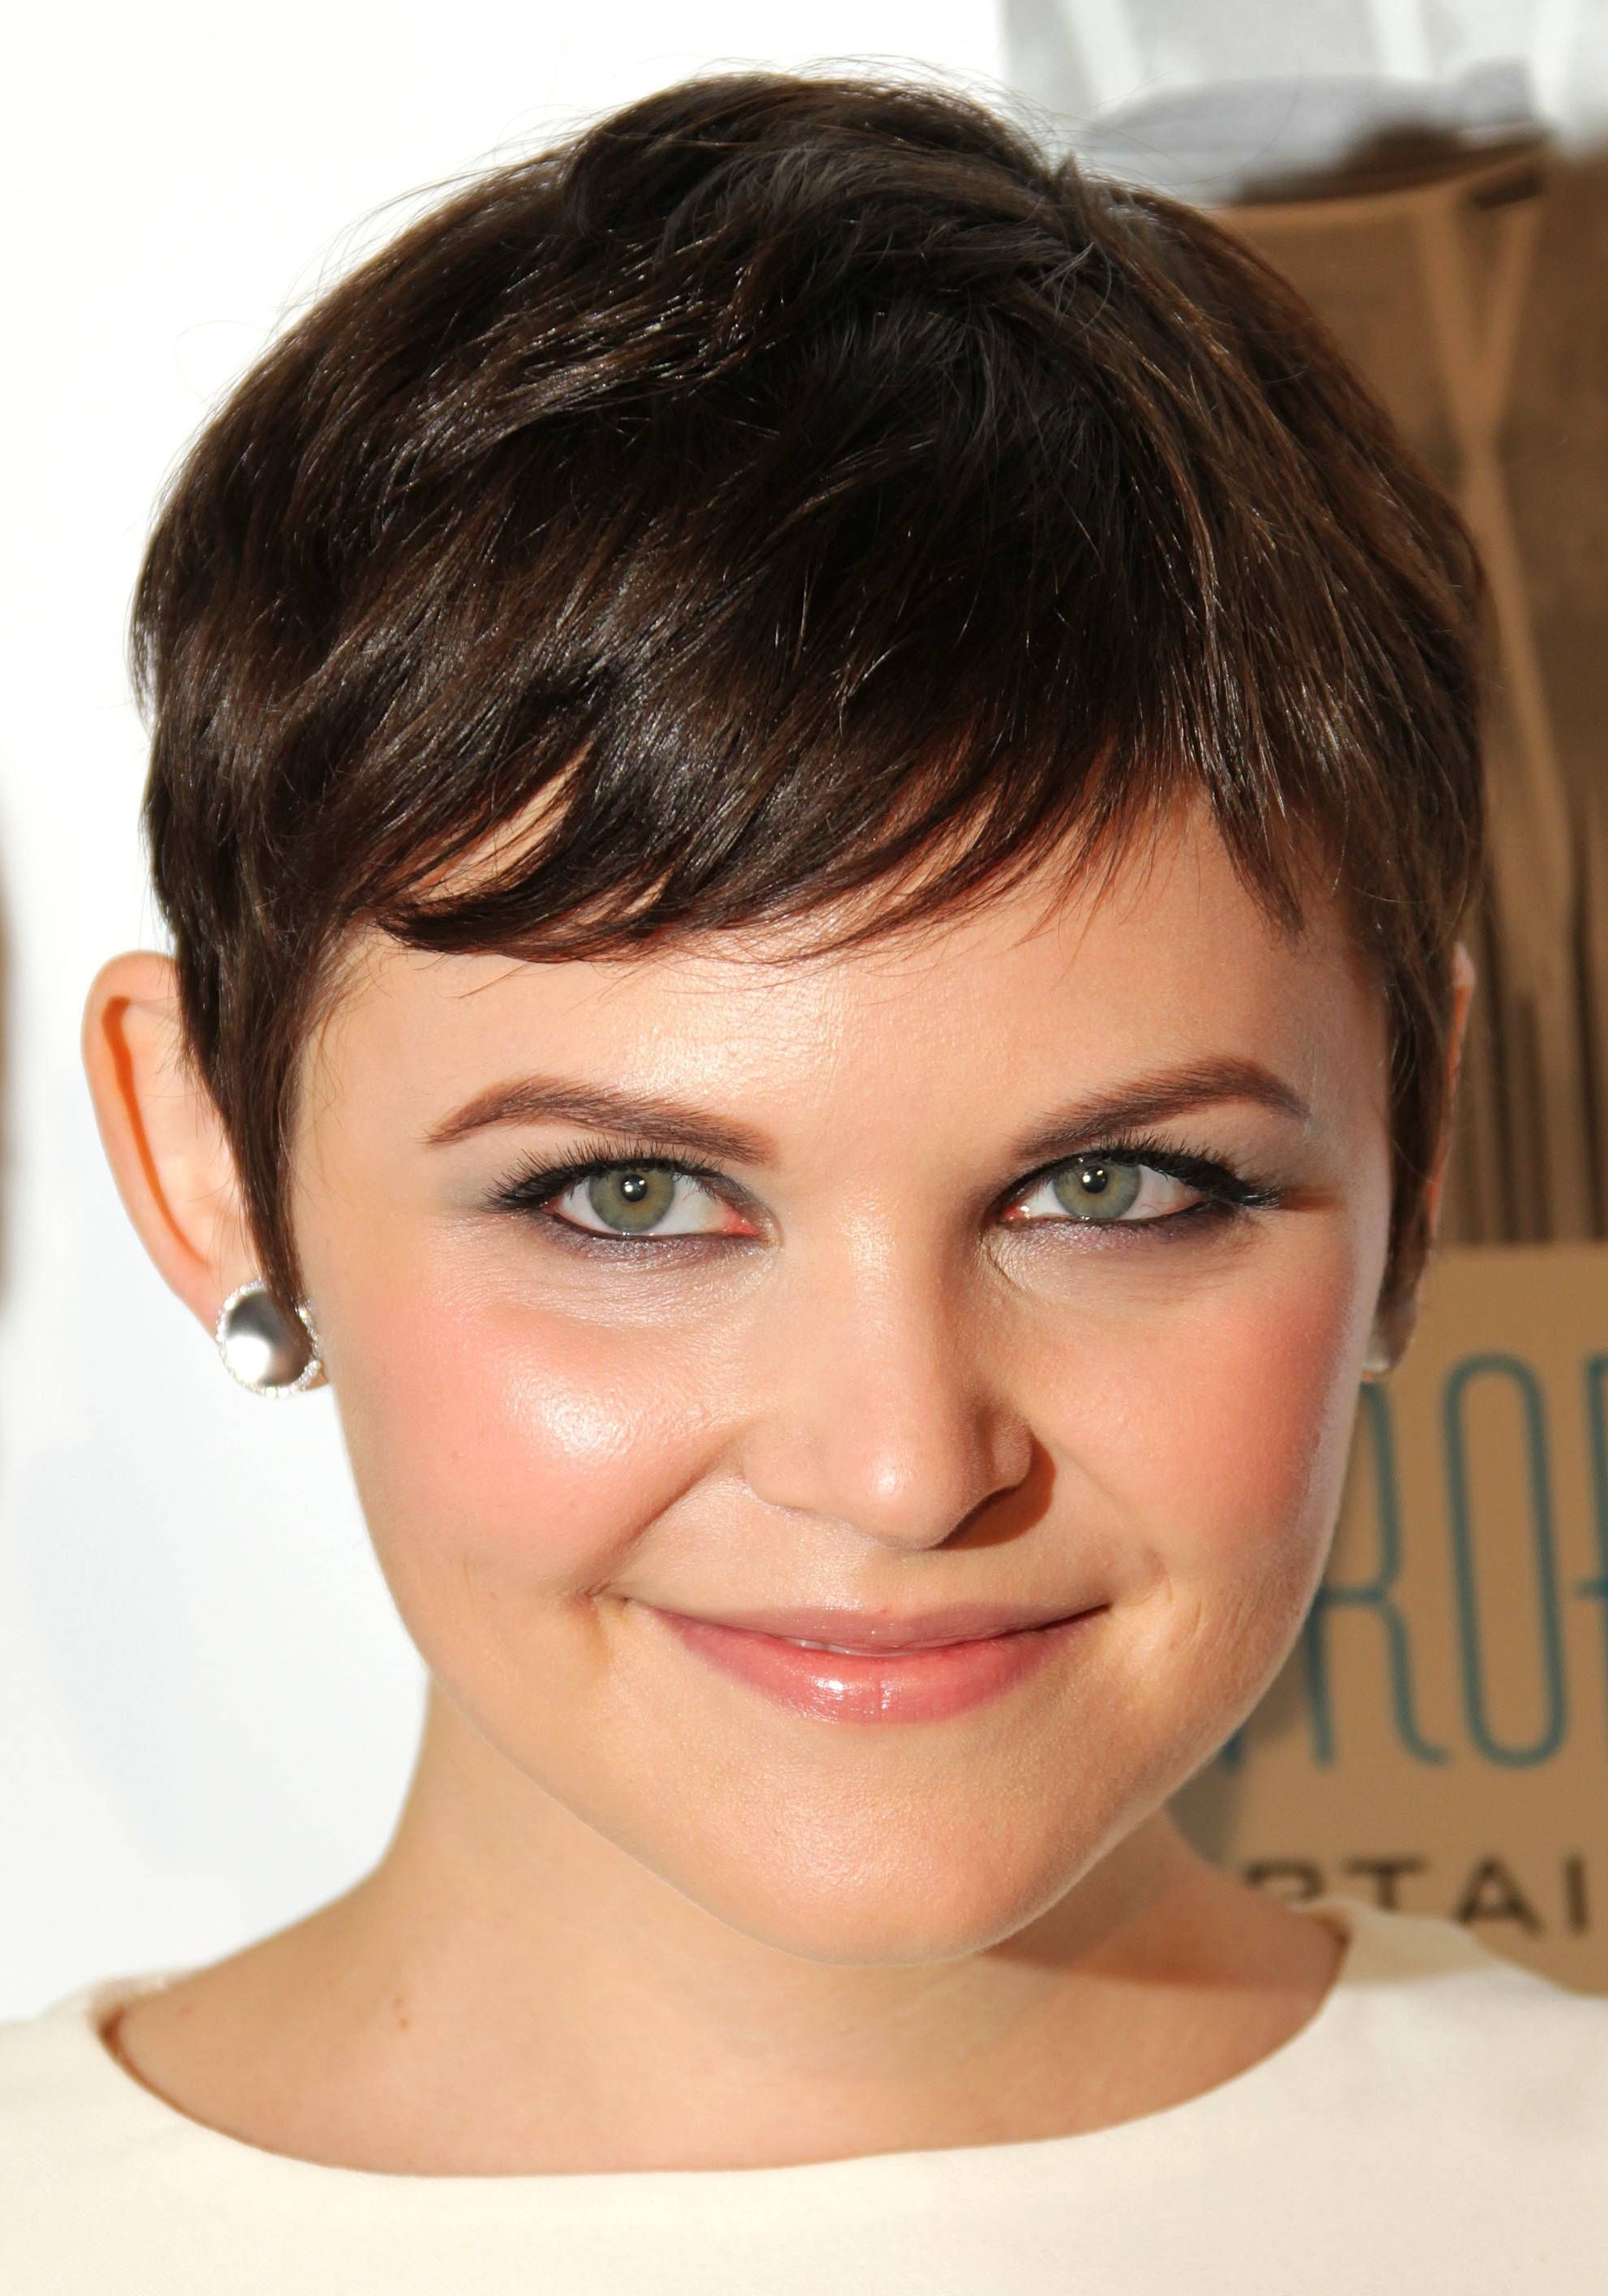 Swell 1000 Images About Pixie Cut On Pinterest Short Hairstyles Short Hairstyles Gunalazisus